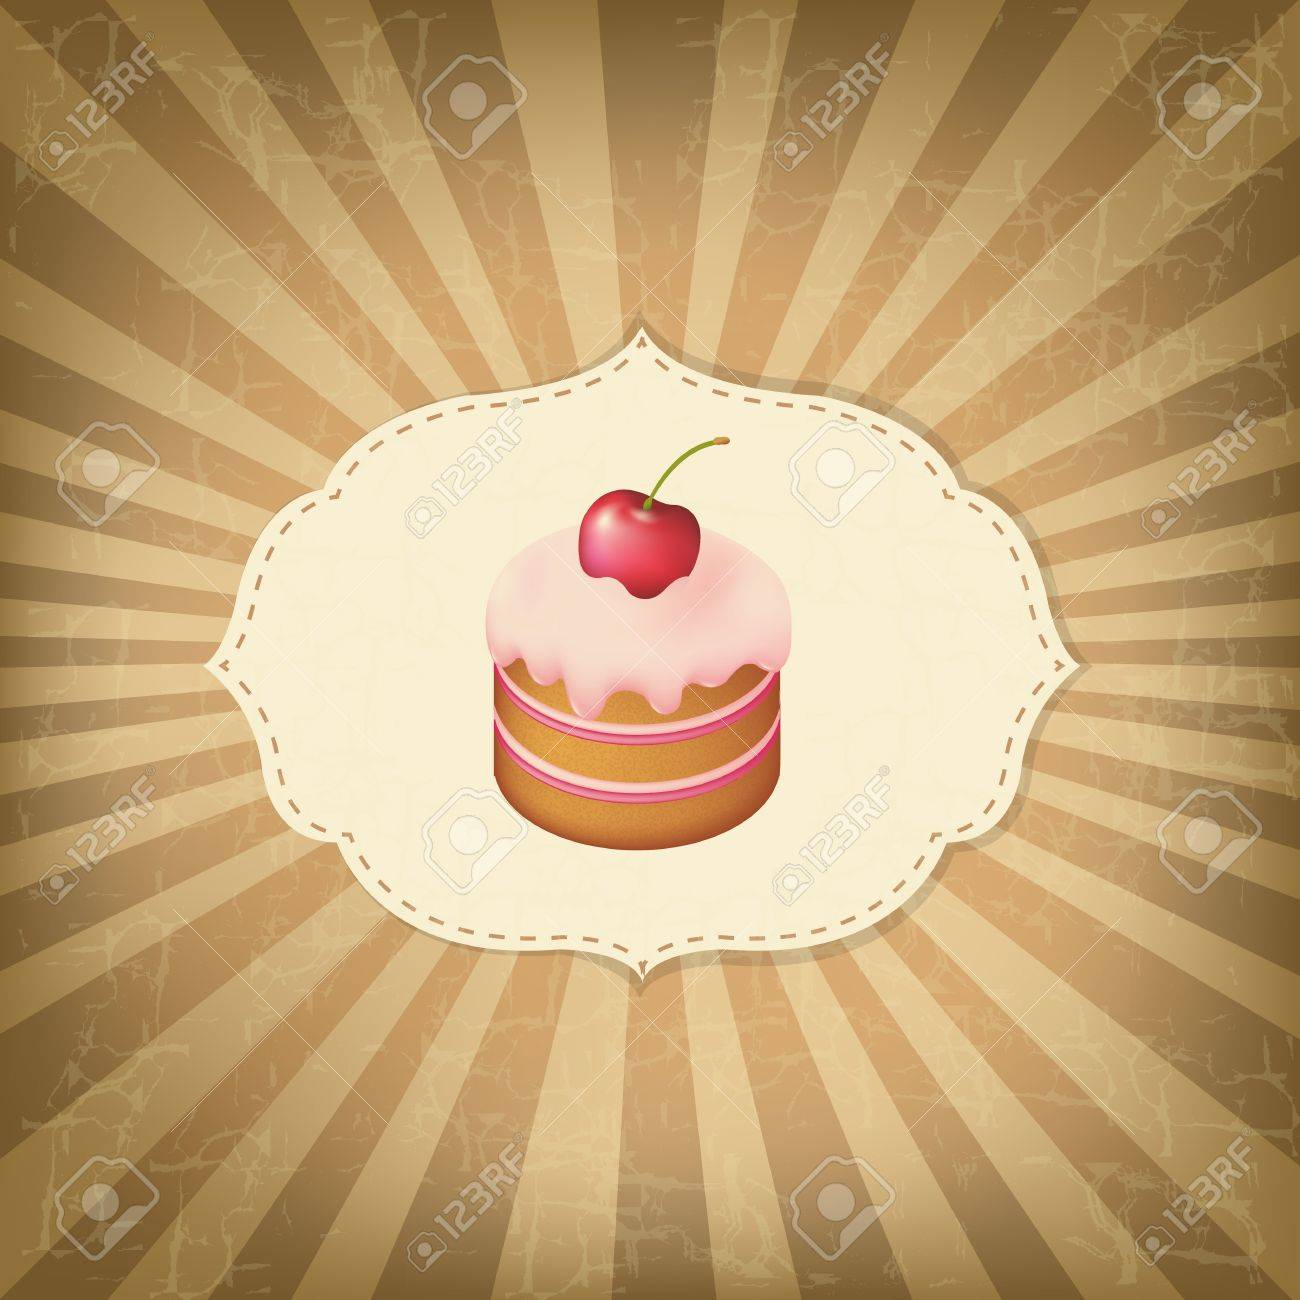 Vintage Old Label With Cupcake Stock Vector - 13639090